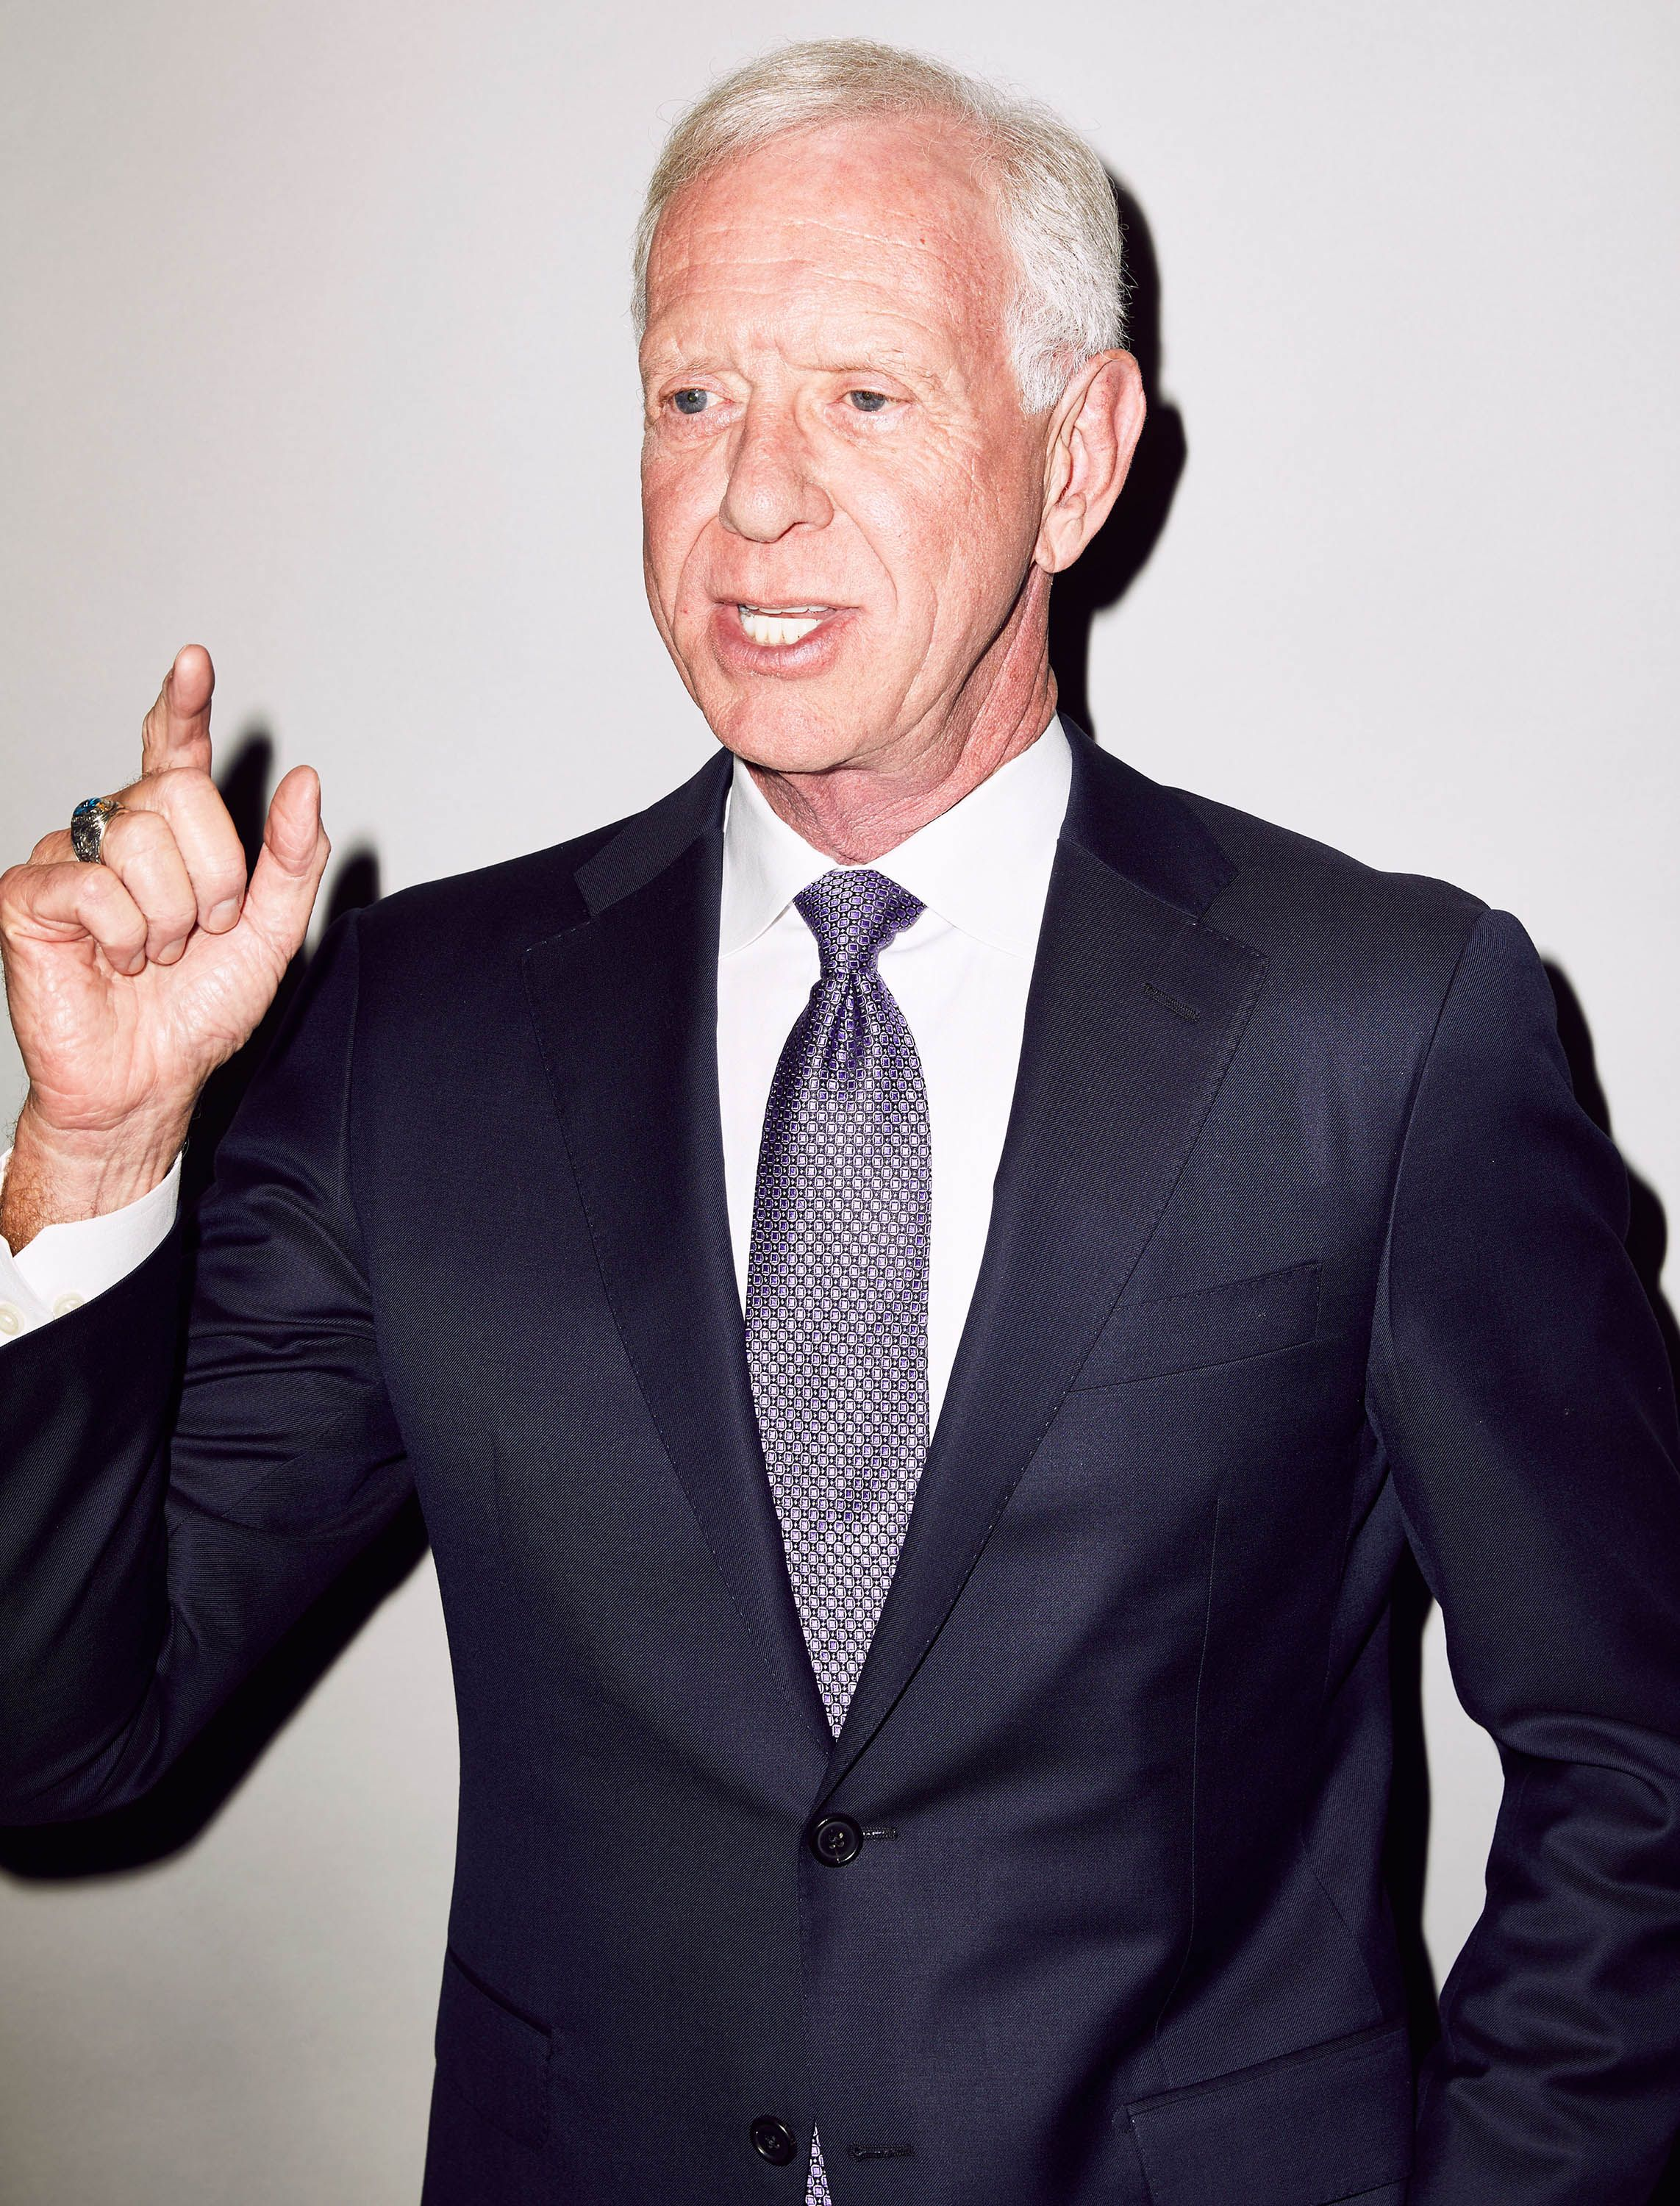 Captain Sully Sullenberger Talks Miracle Hudson River Landing 10 Years Later